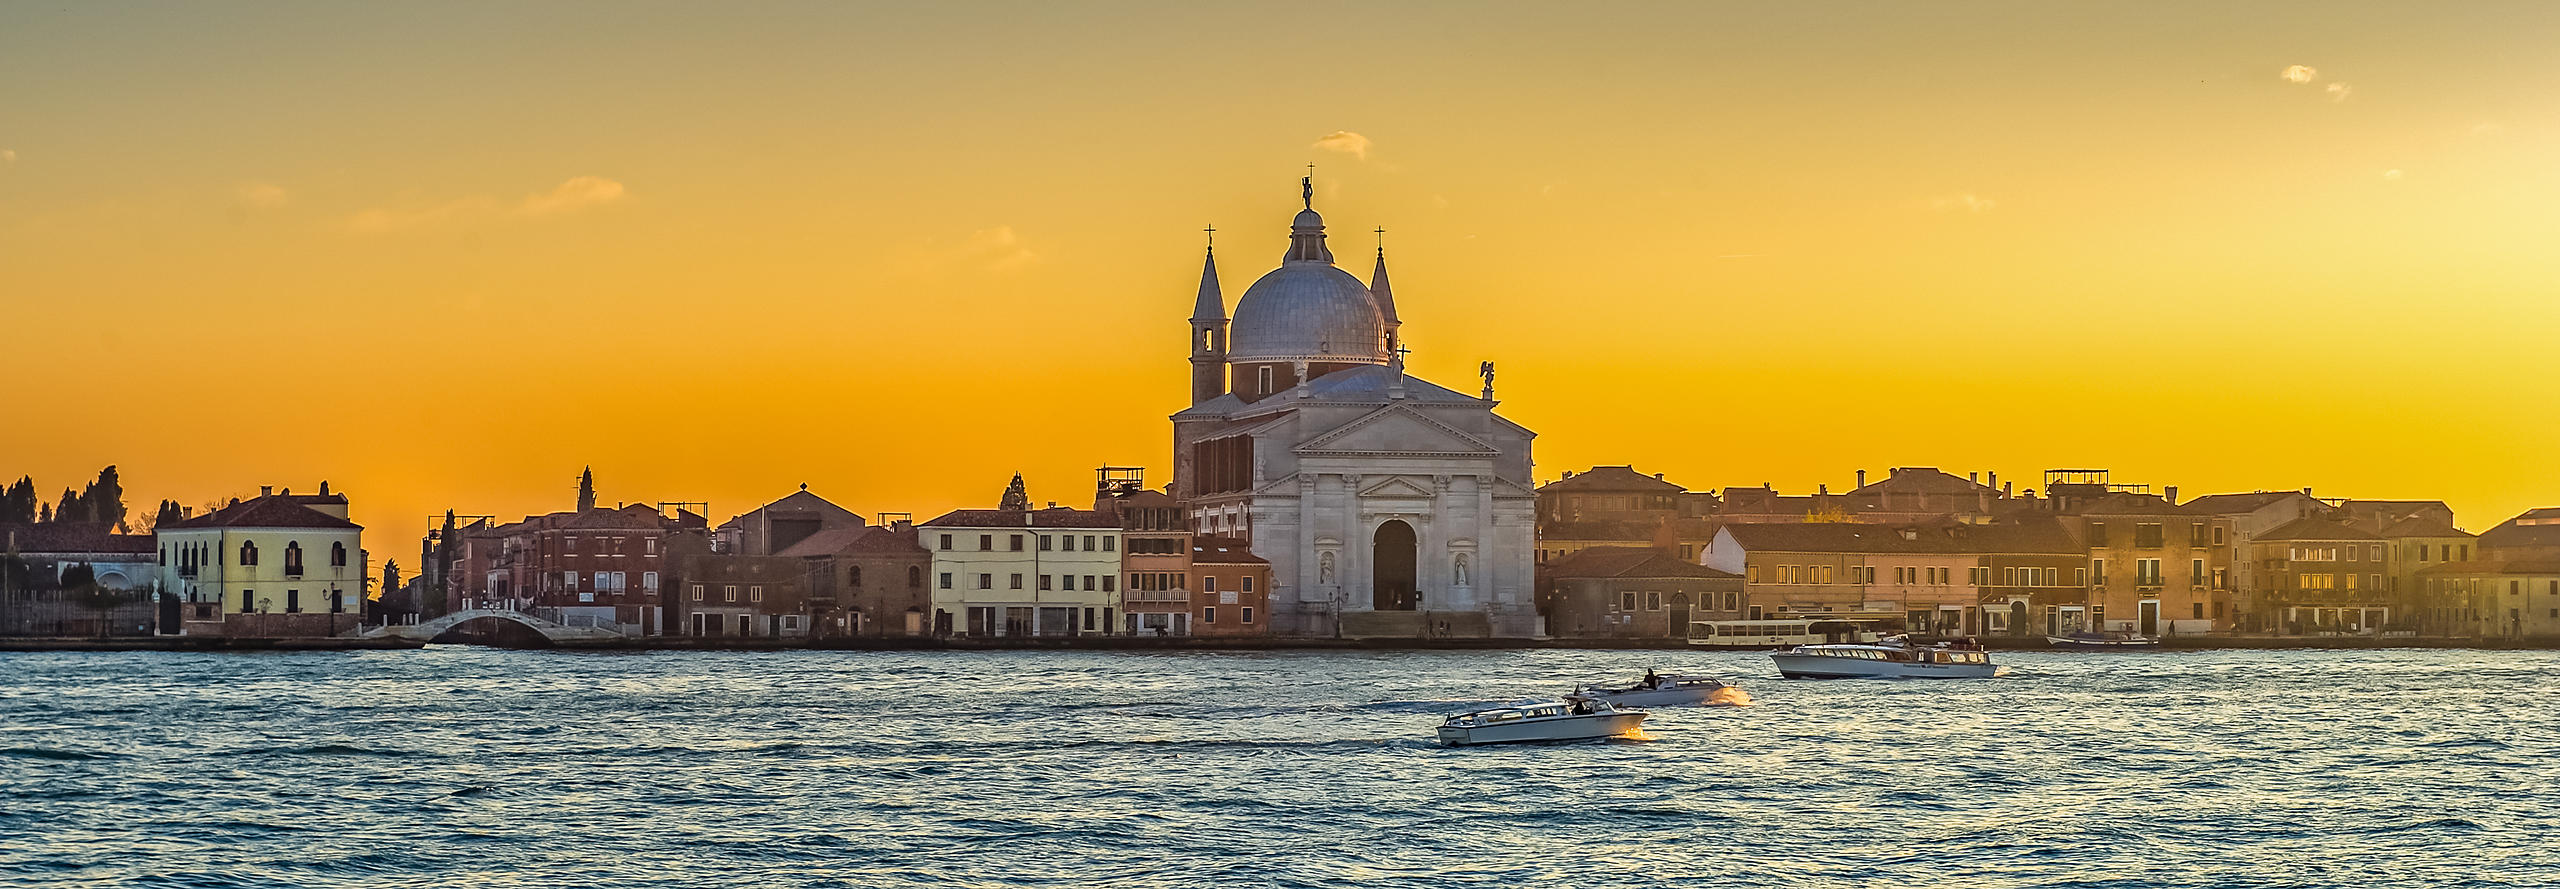 Chiesa Del Redentore, Giudecca with Water Taxis in the Grand Canal, Venice